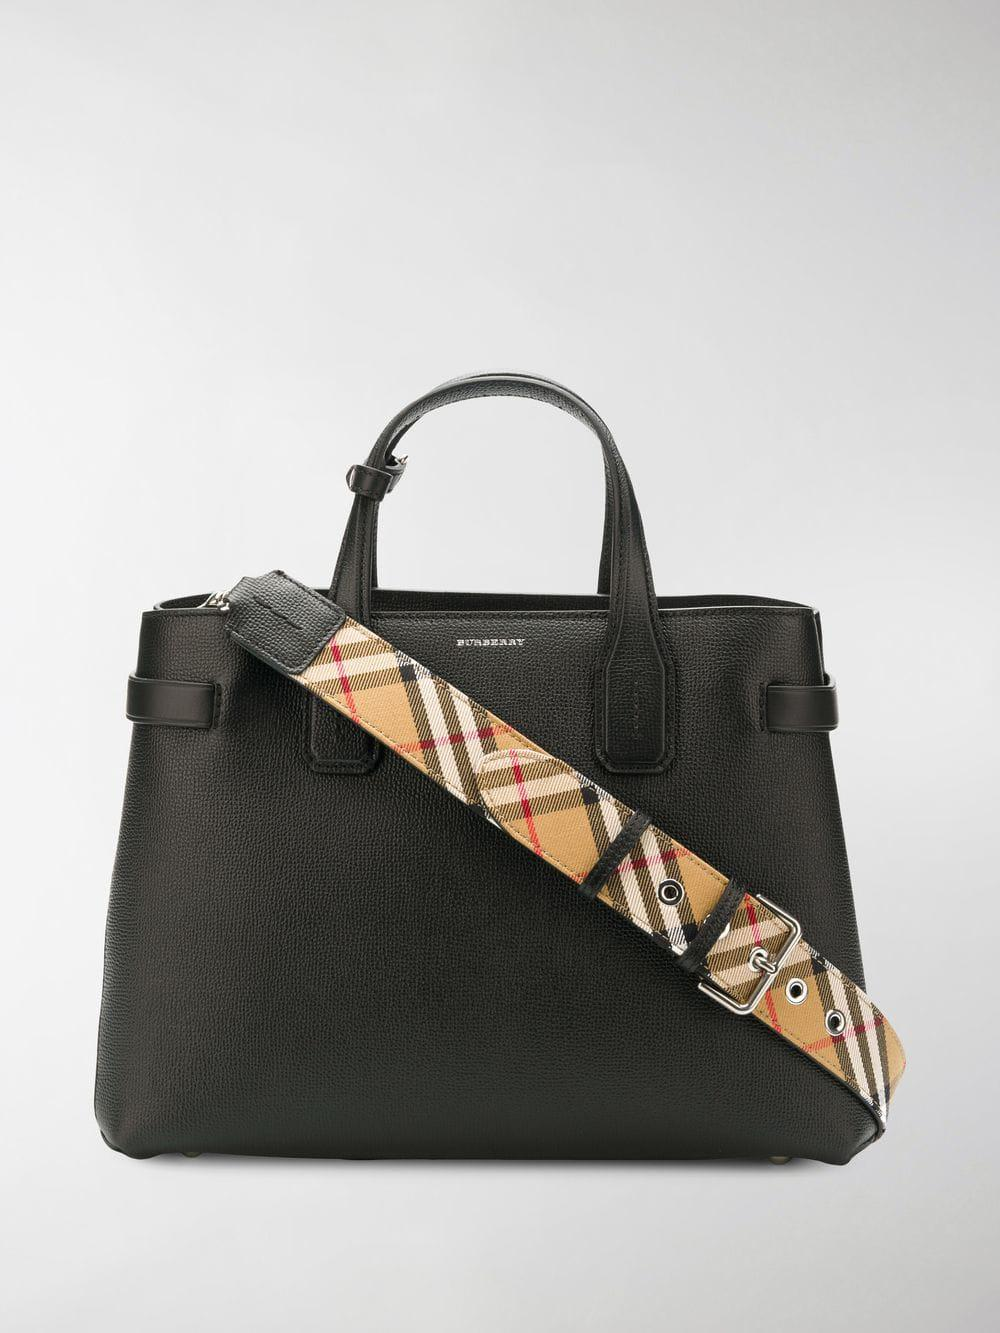 Burberry - Black The Medium Banner In Leather And Vintage Check - Lyst.  View fullscreen cea2b7d530